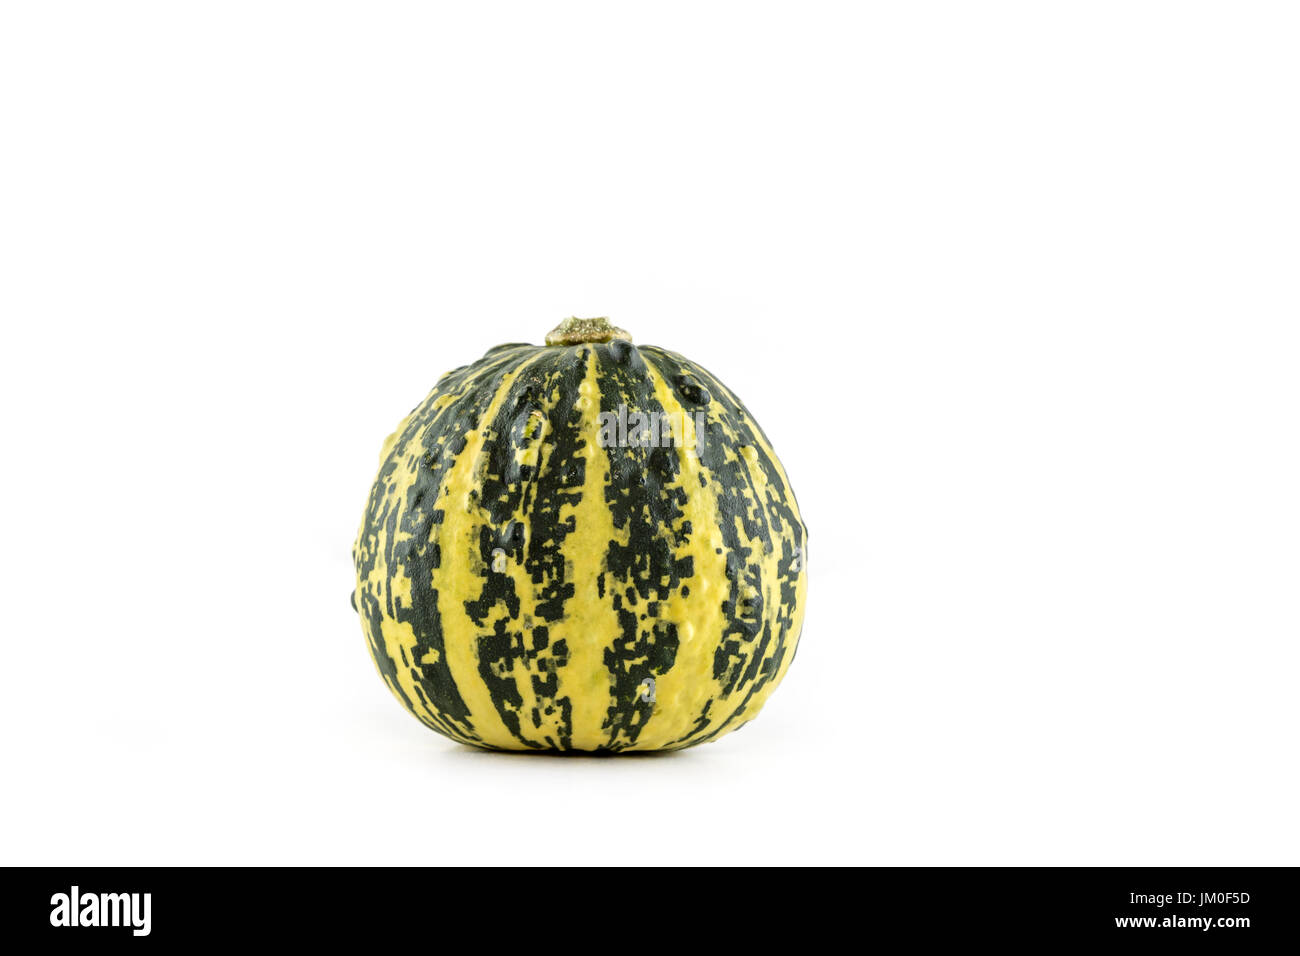 A single pumpkin (Italian Stripe) lies in front of a white background as a Cut-Outs - Stock Image